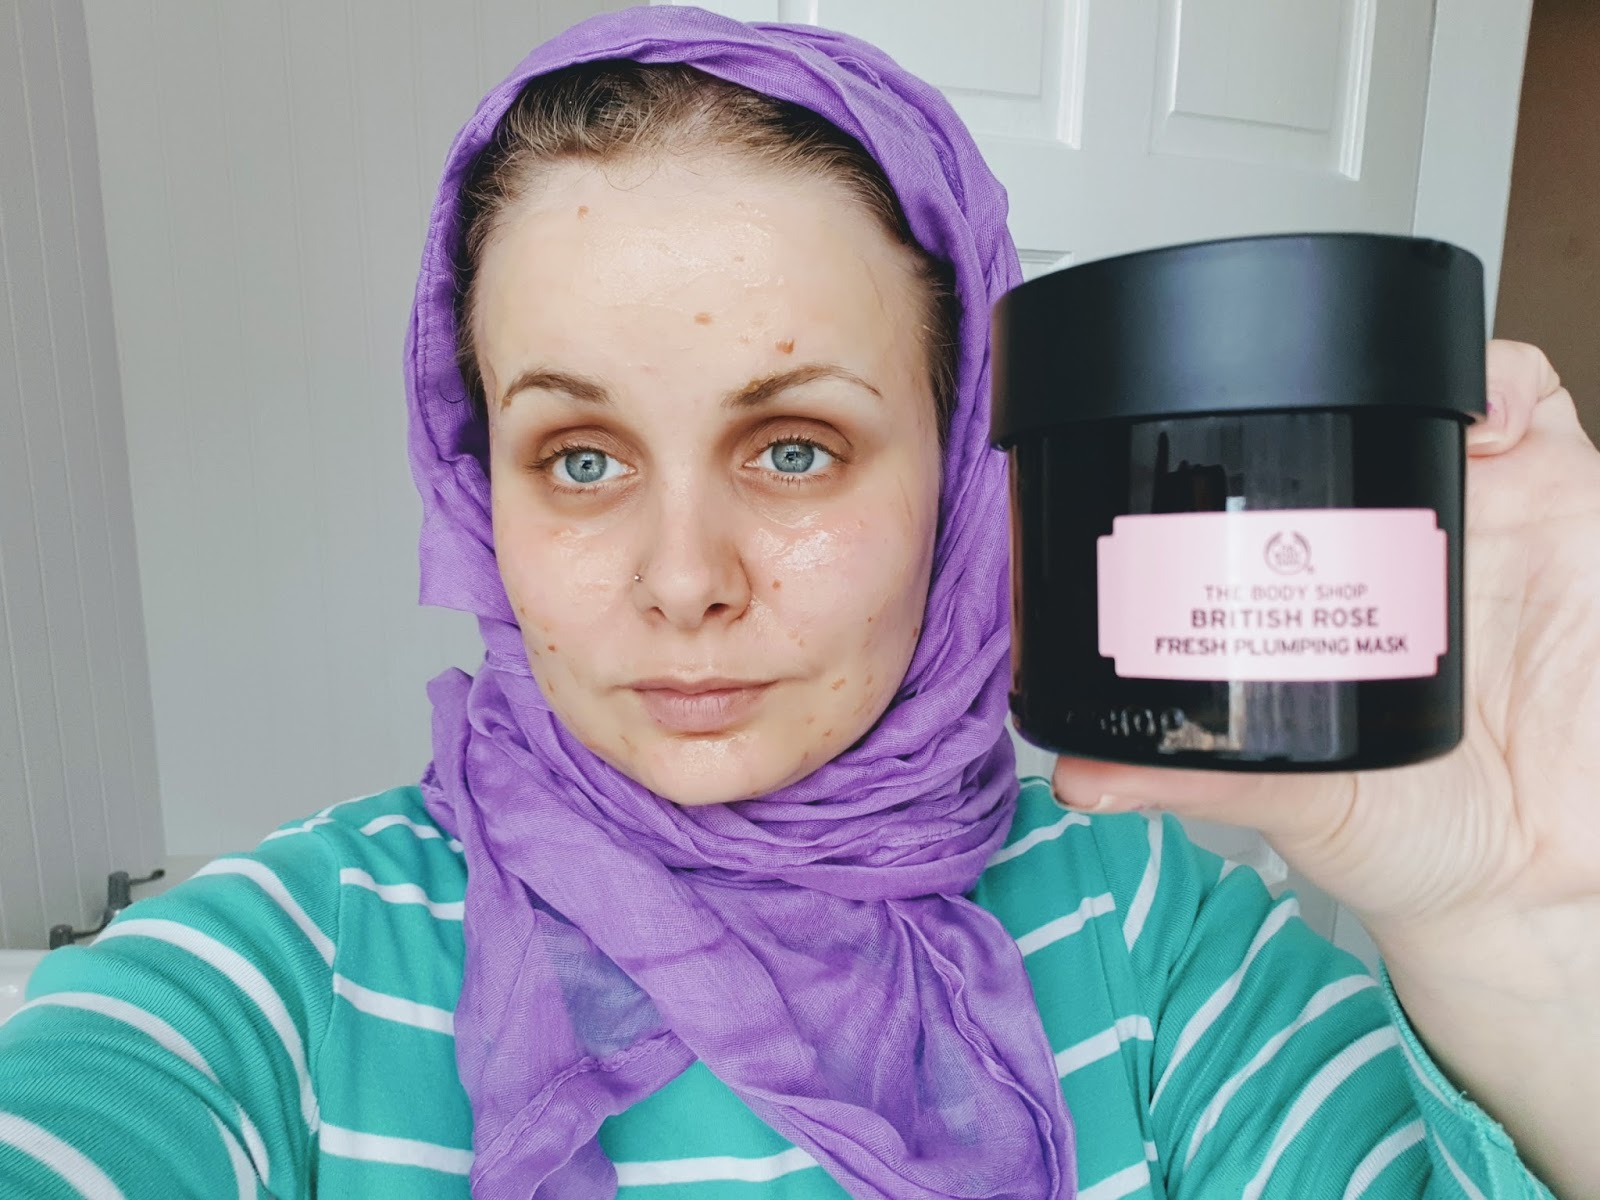 the body shop British rose face mask demo/review